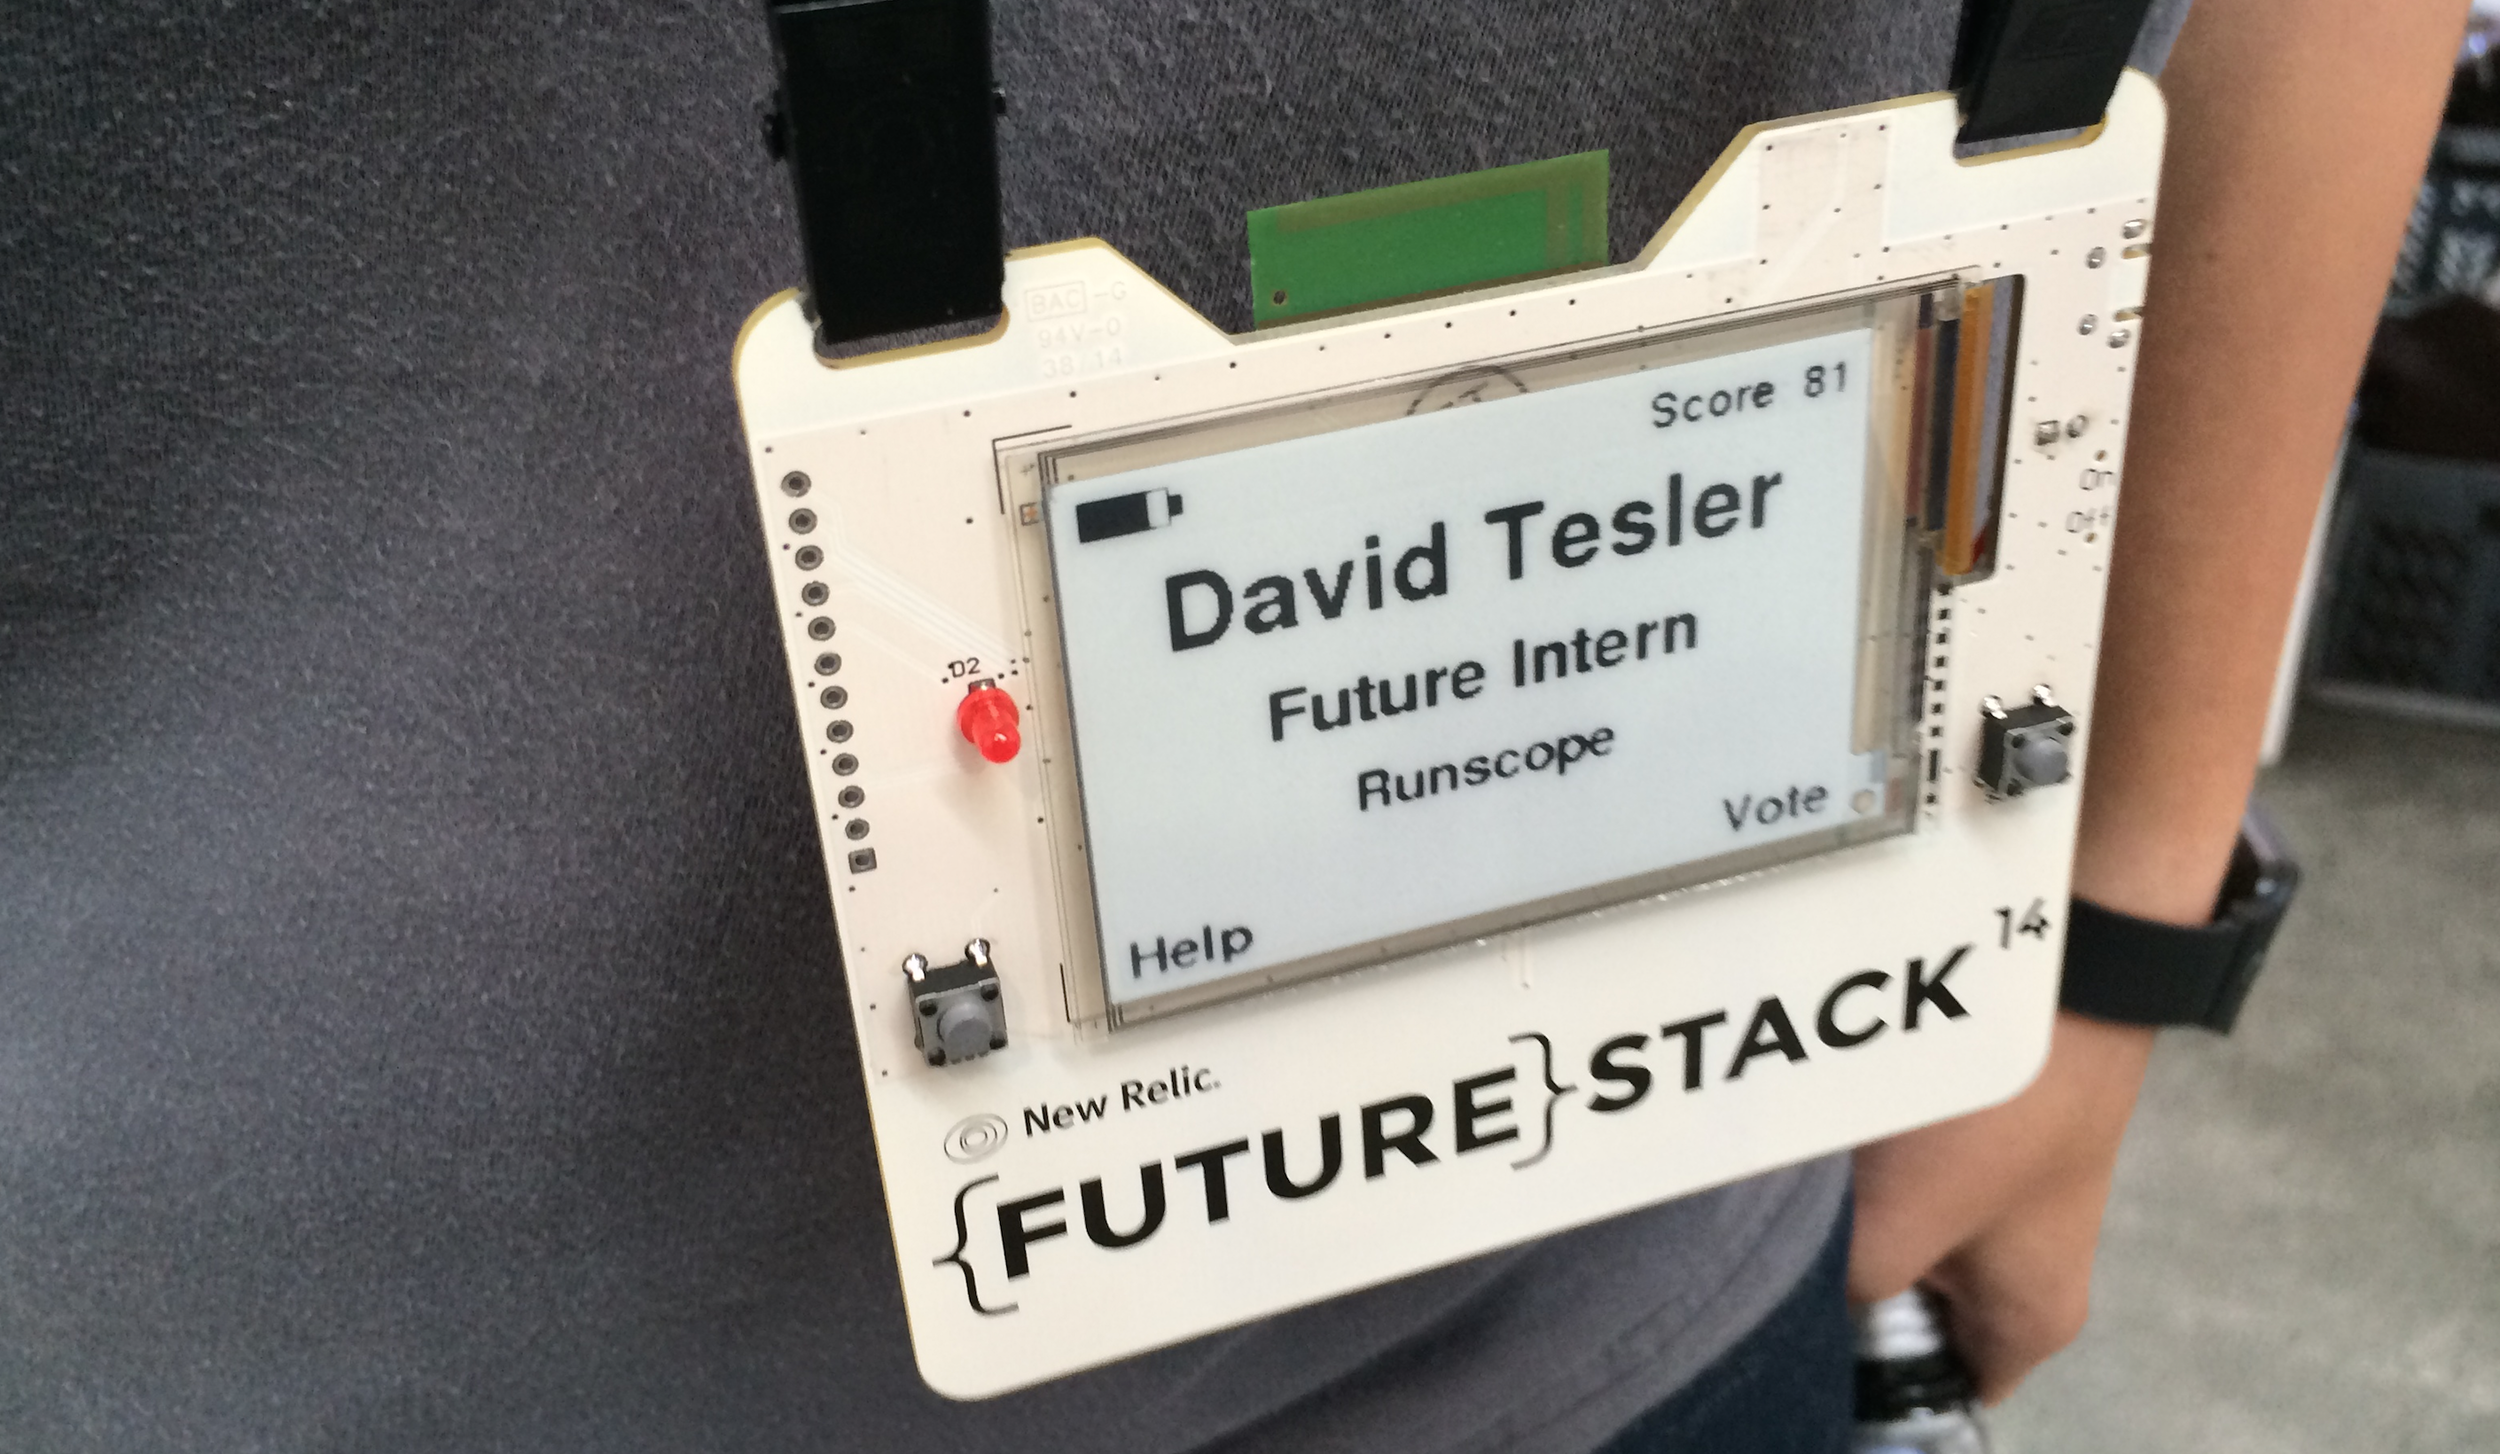 David just submitted his resume by digital lanyard